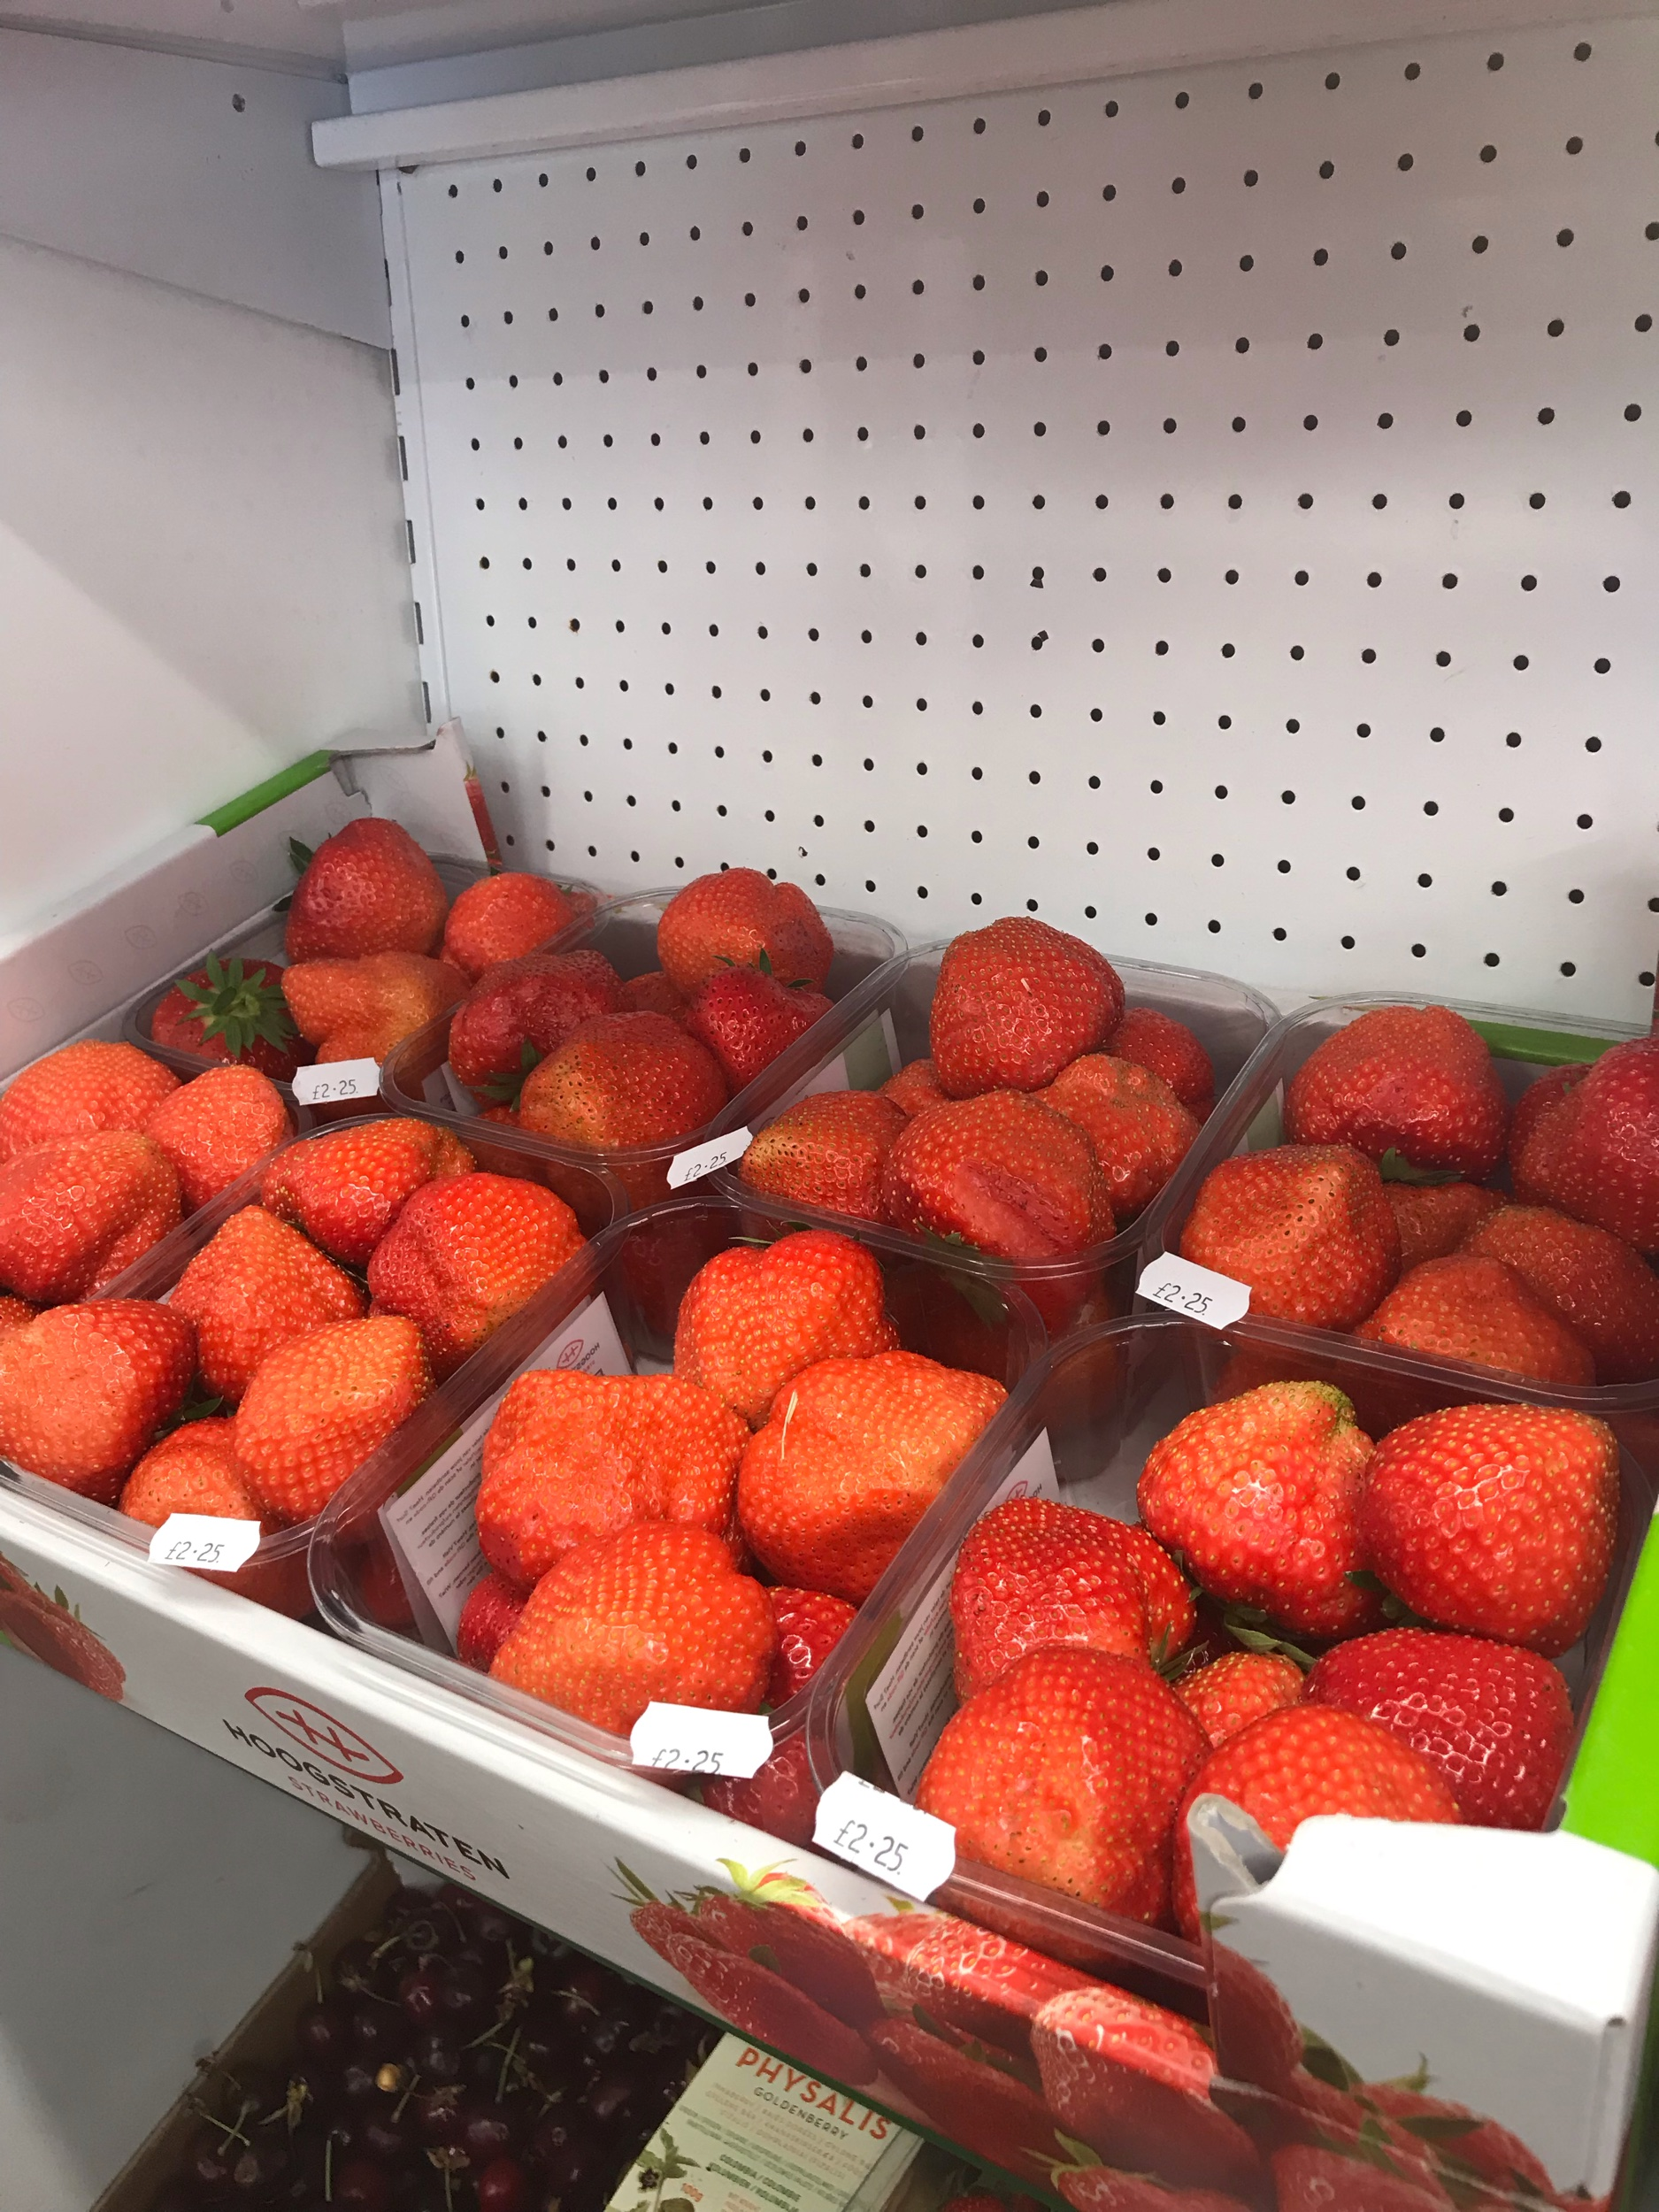 Large tasty strawberries, also available is double cream